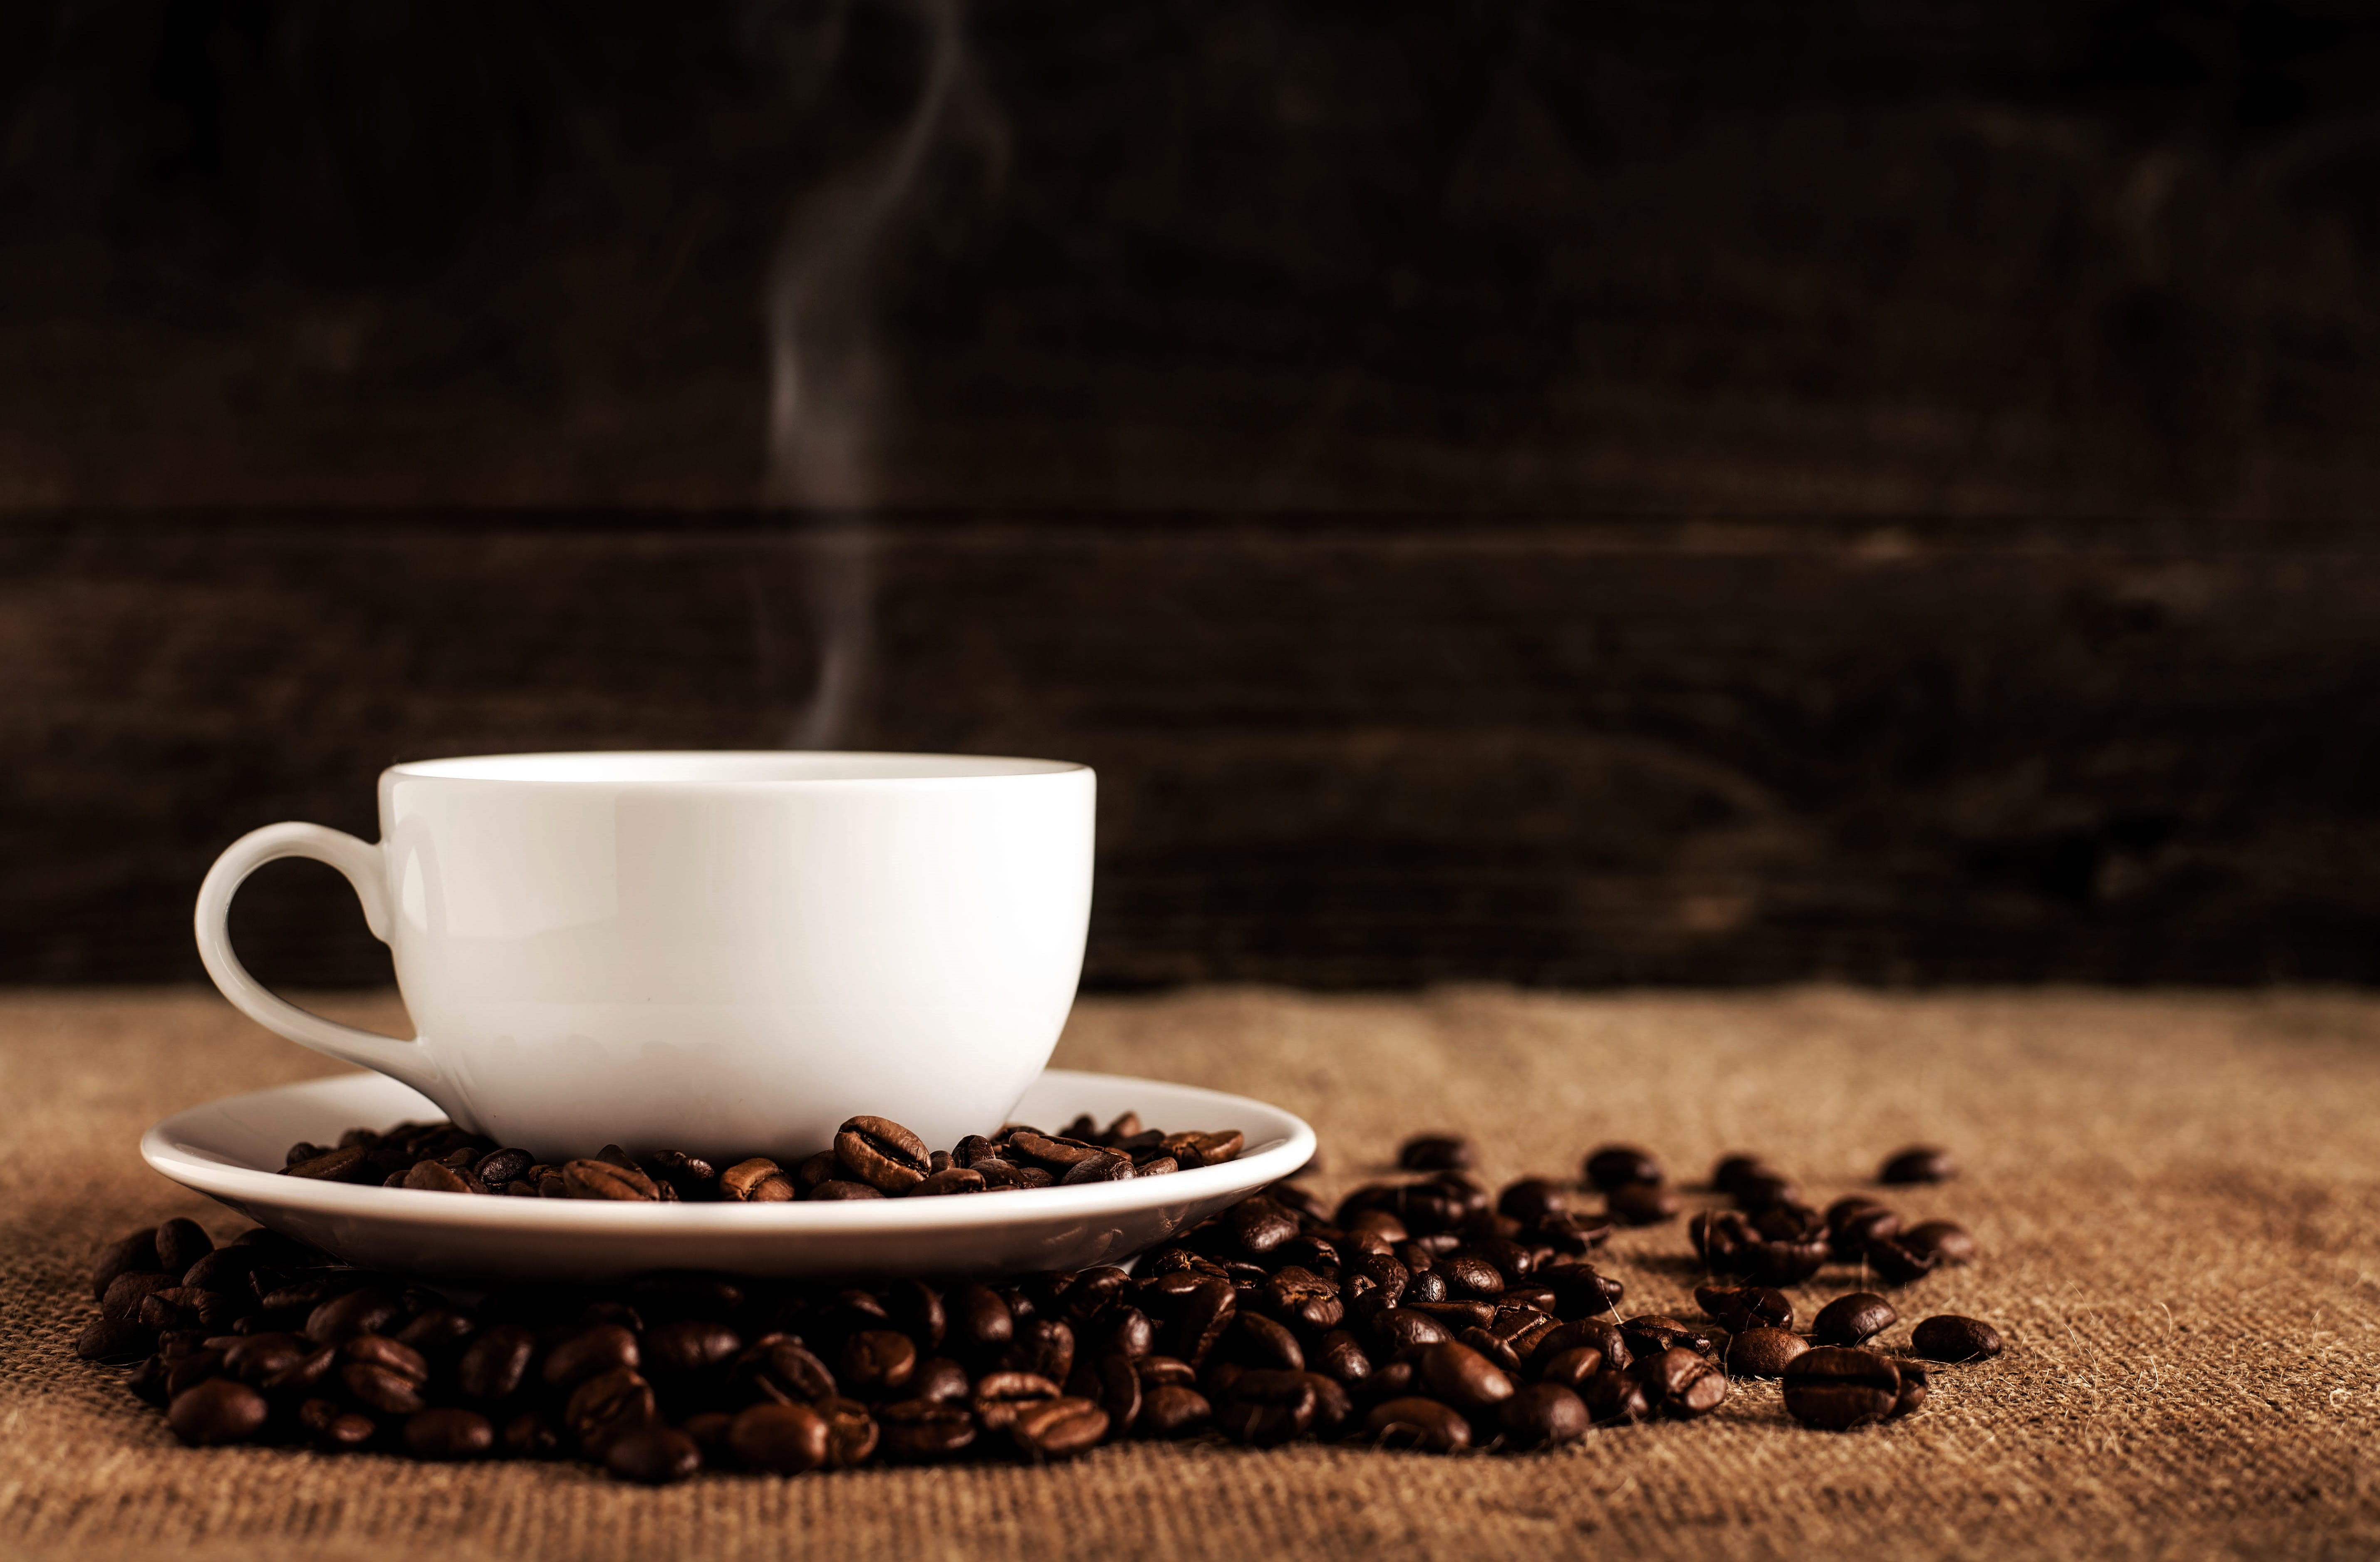 White ceramic mug and saucer with coffee beans on brown textile; image by Mike Kenneally, via Unsplash.com.